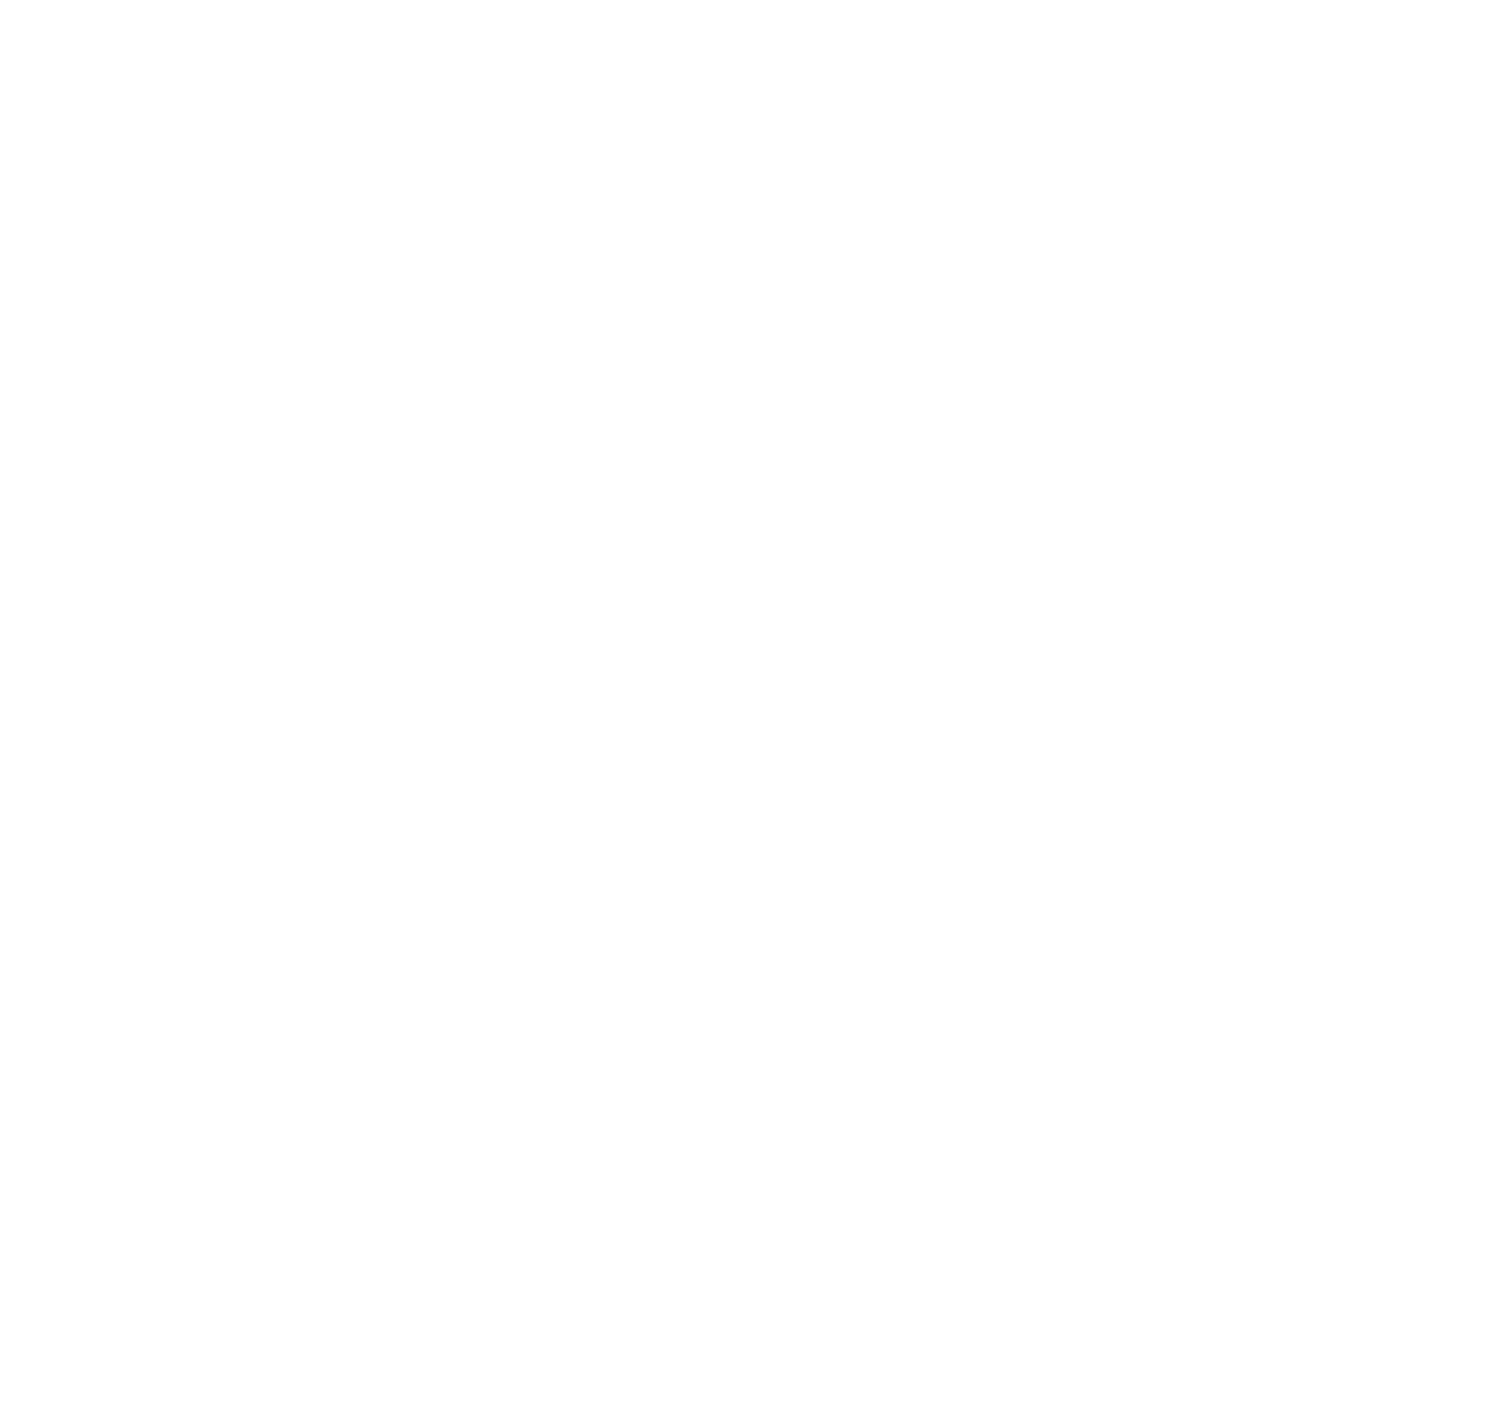 Cornerscape